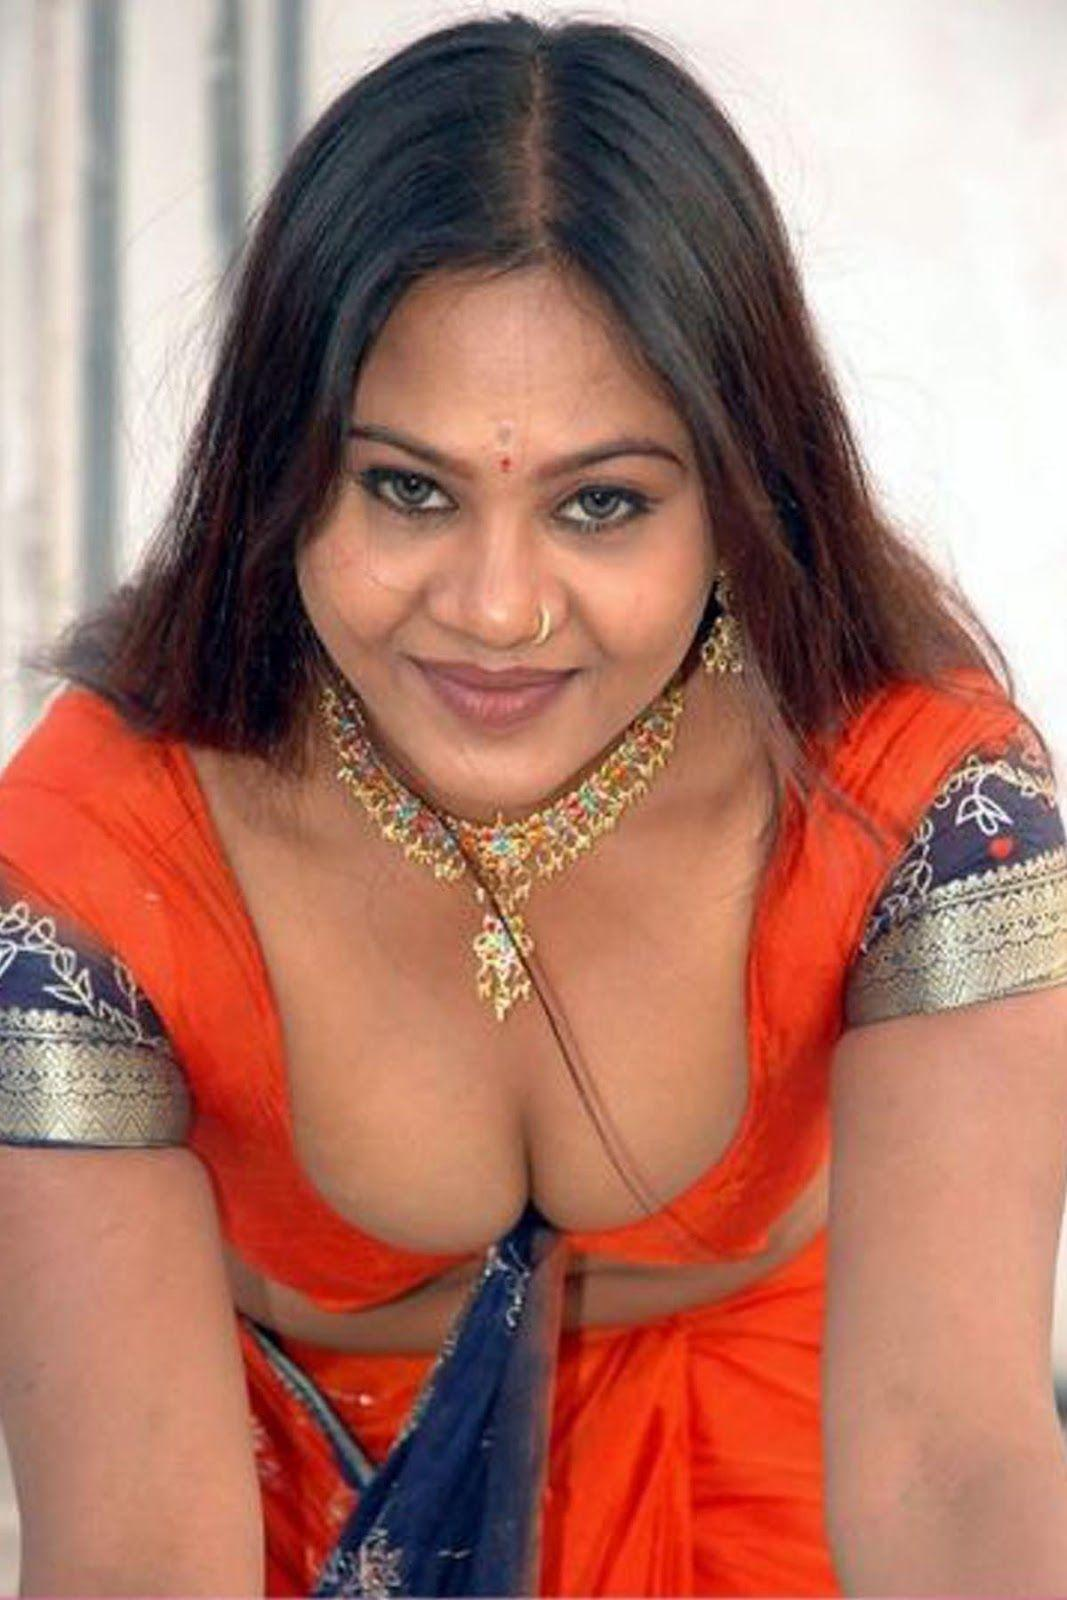 videos-tamil-south-indian-hot-girls-transsexual-makes-bondage-film